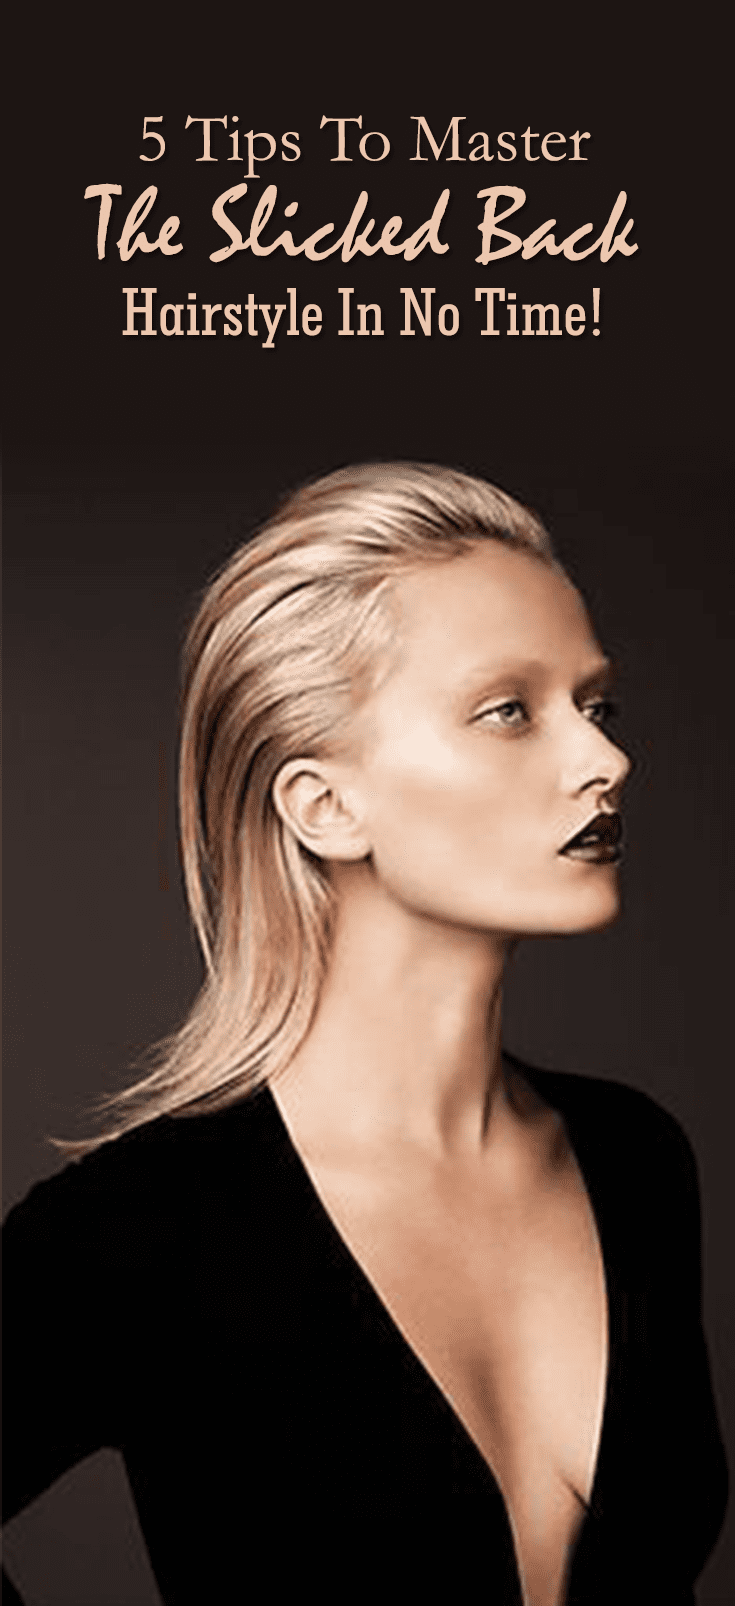 5 Tips To Master The Slicked Back Hairstyles